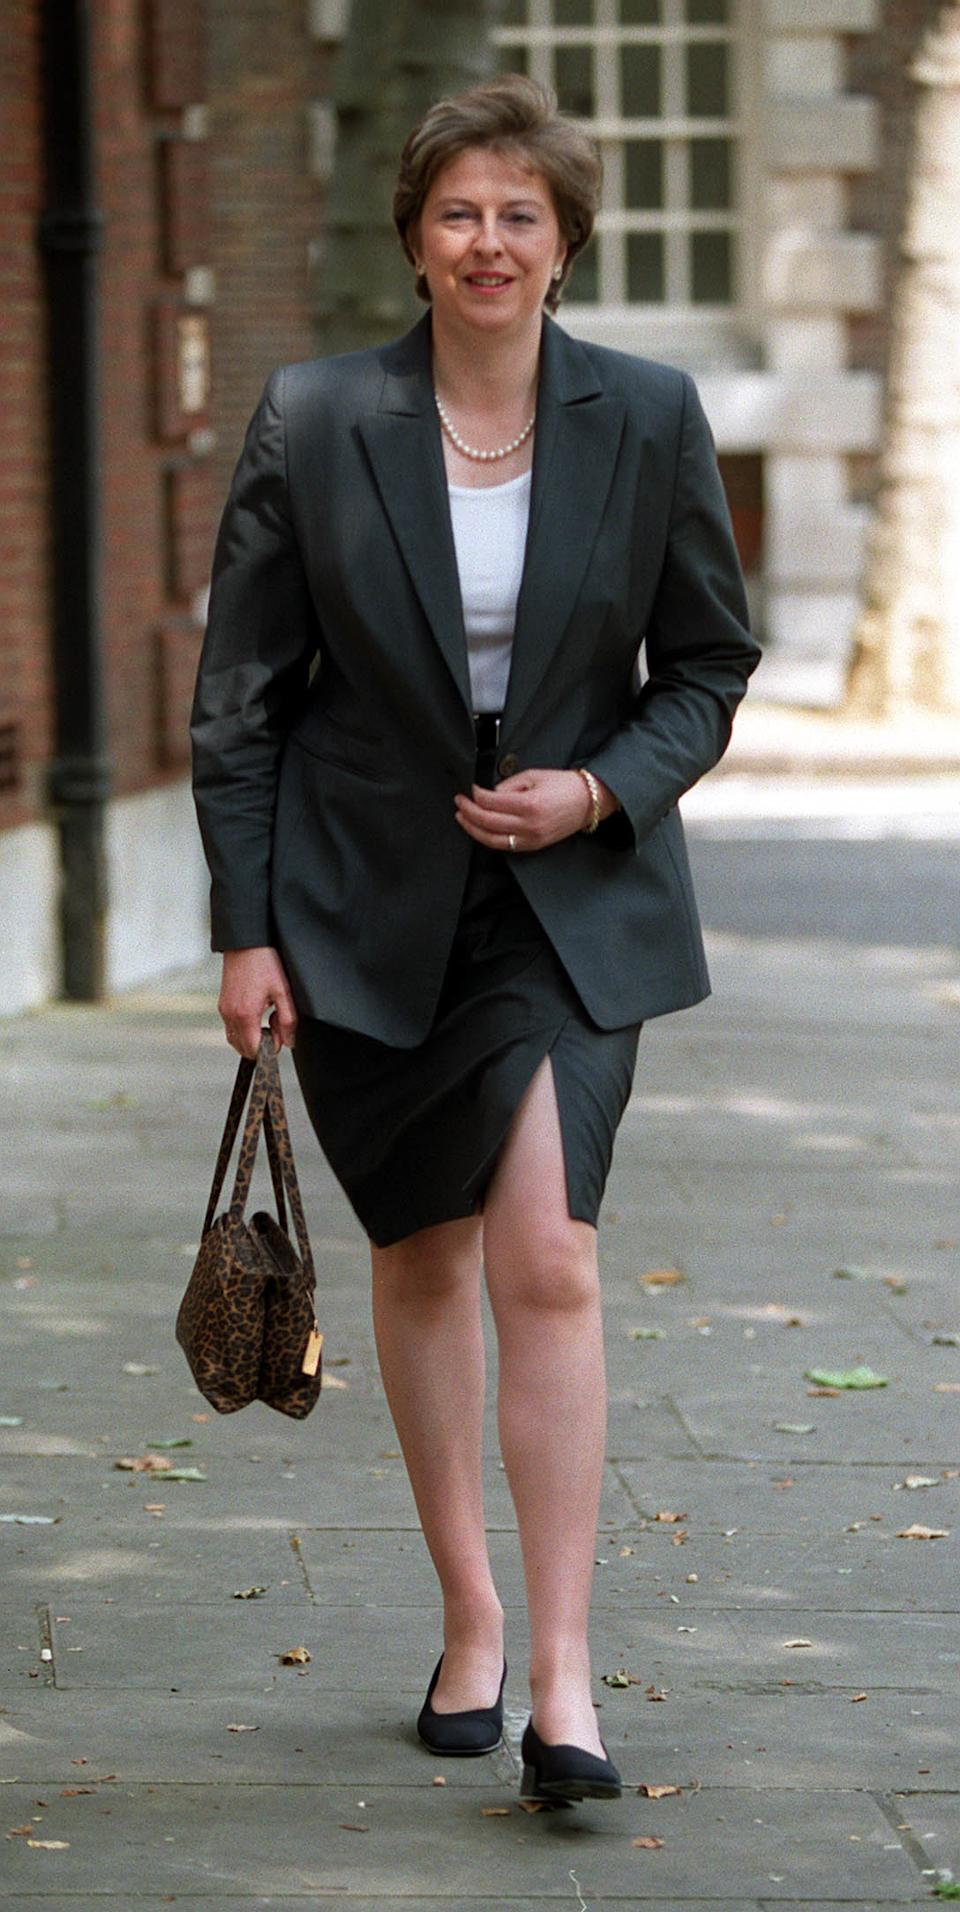 She first entered the Shadow Cabinet in 1999 when she was appointed shadow Education and Employment secretary by then Tory leader William Hague. Photo dated 15/06/1999 (PA)